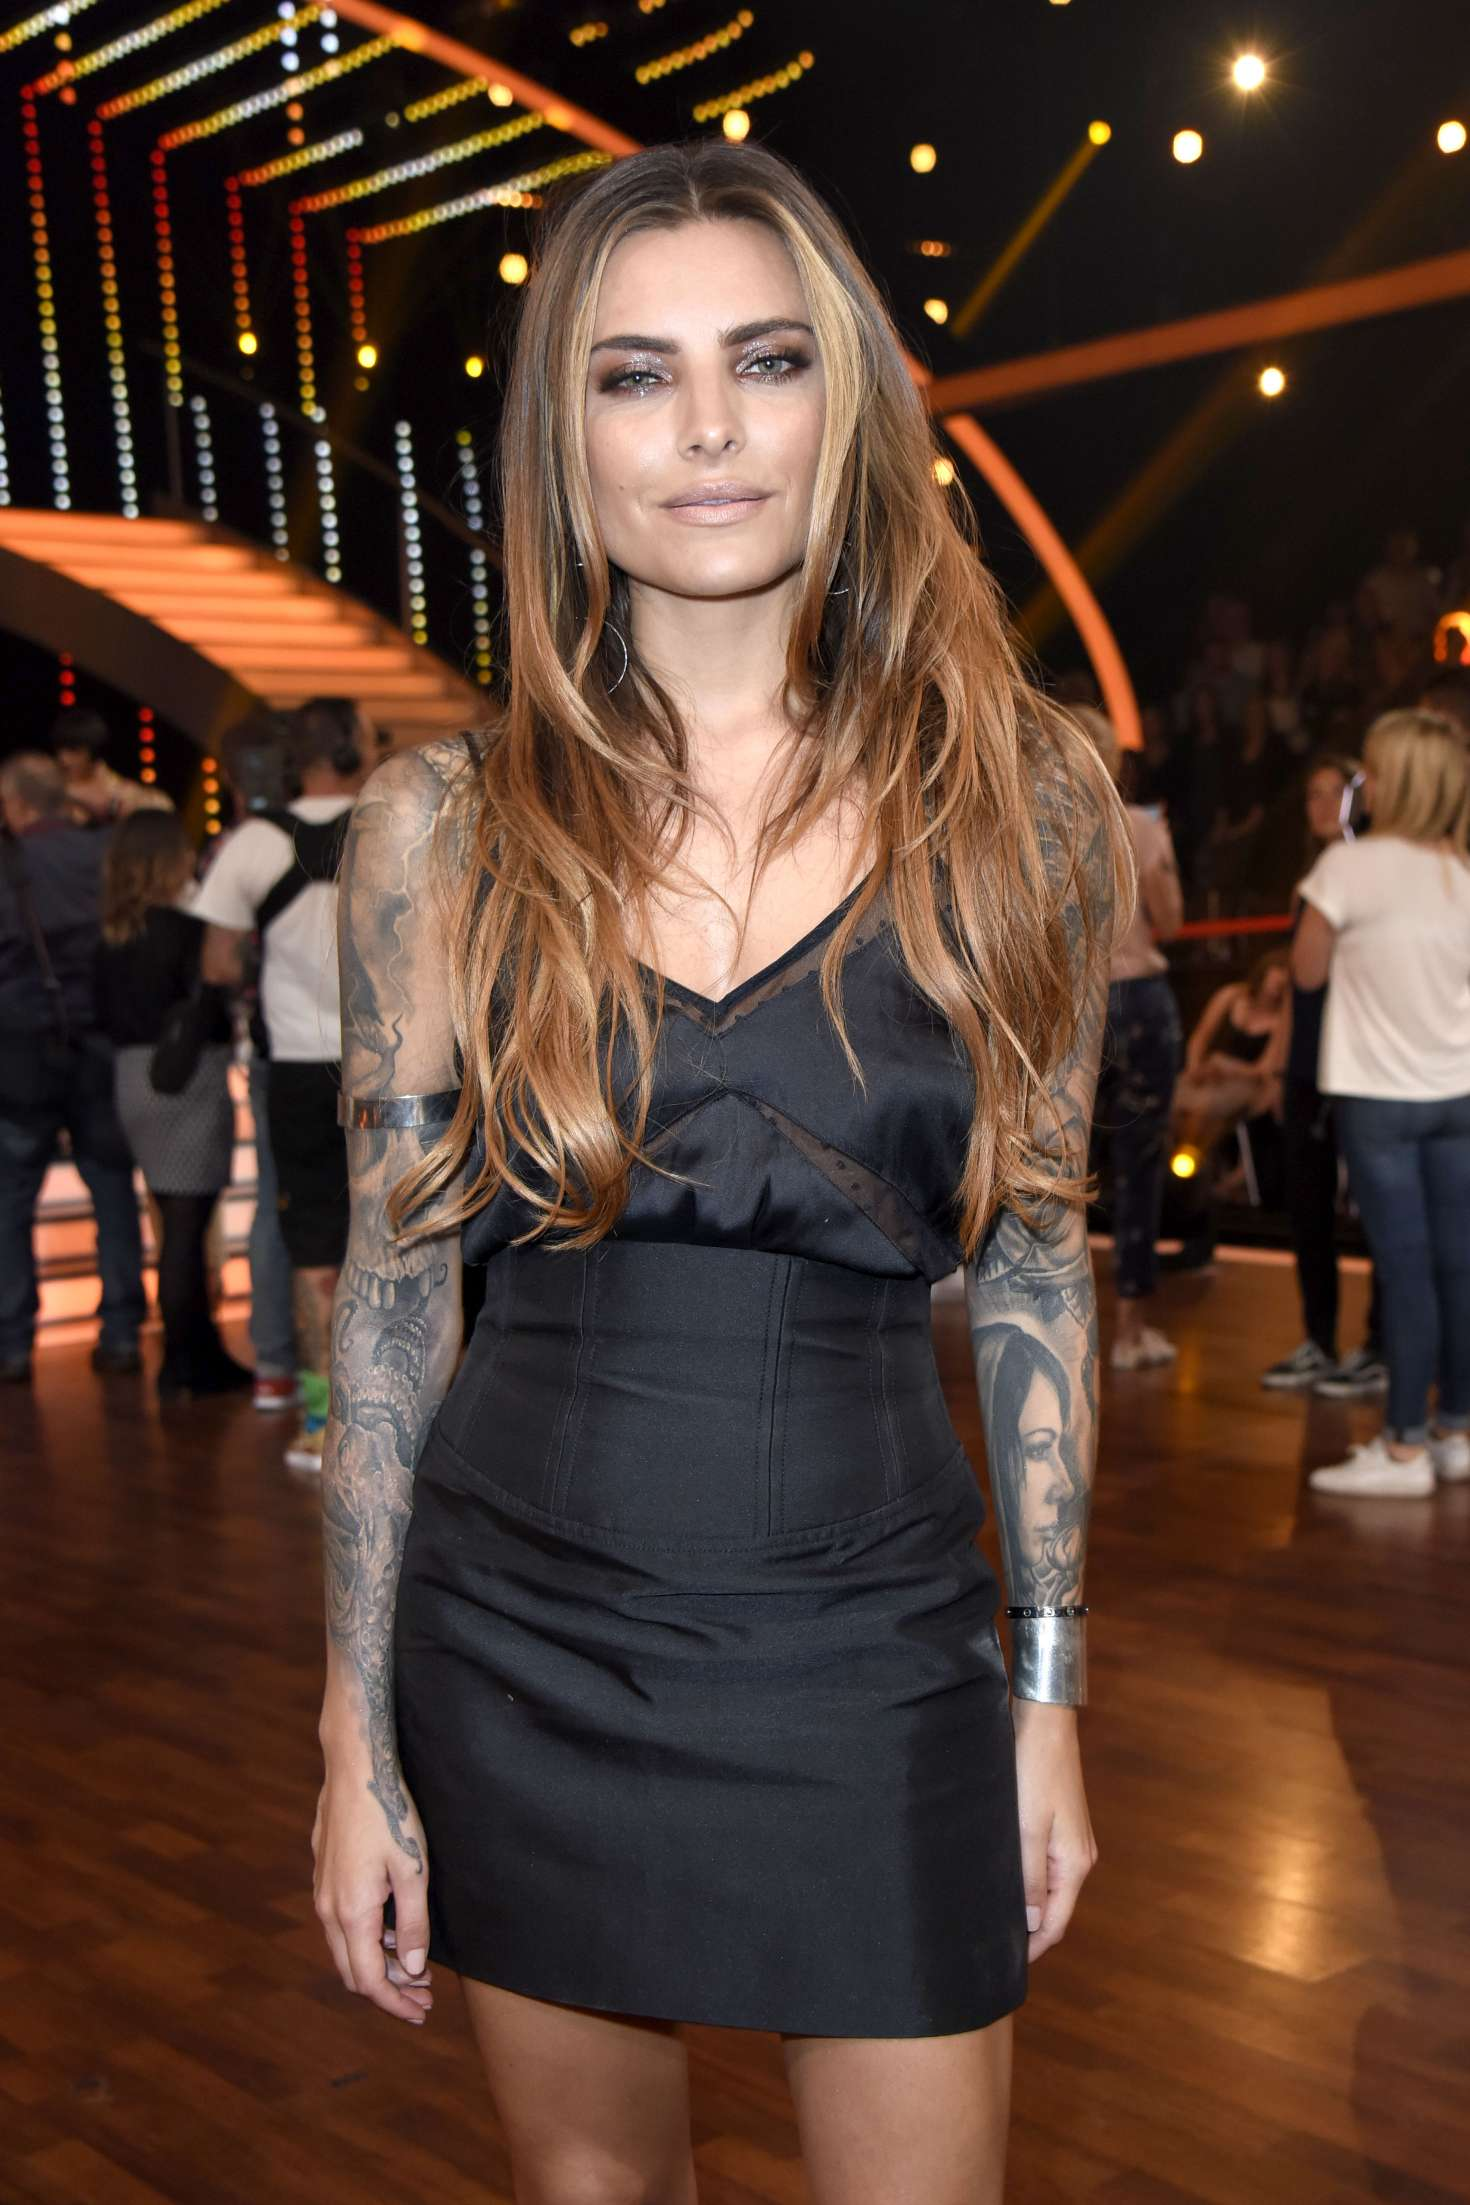 Sophia thomalla rtl live tv show lets dance in cologne